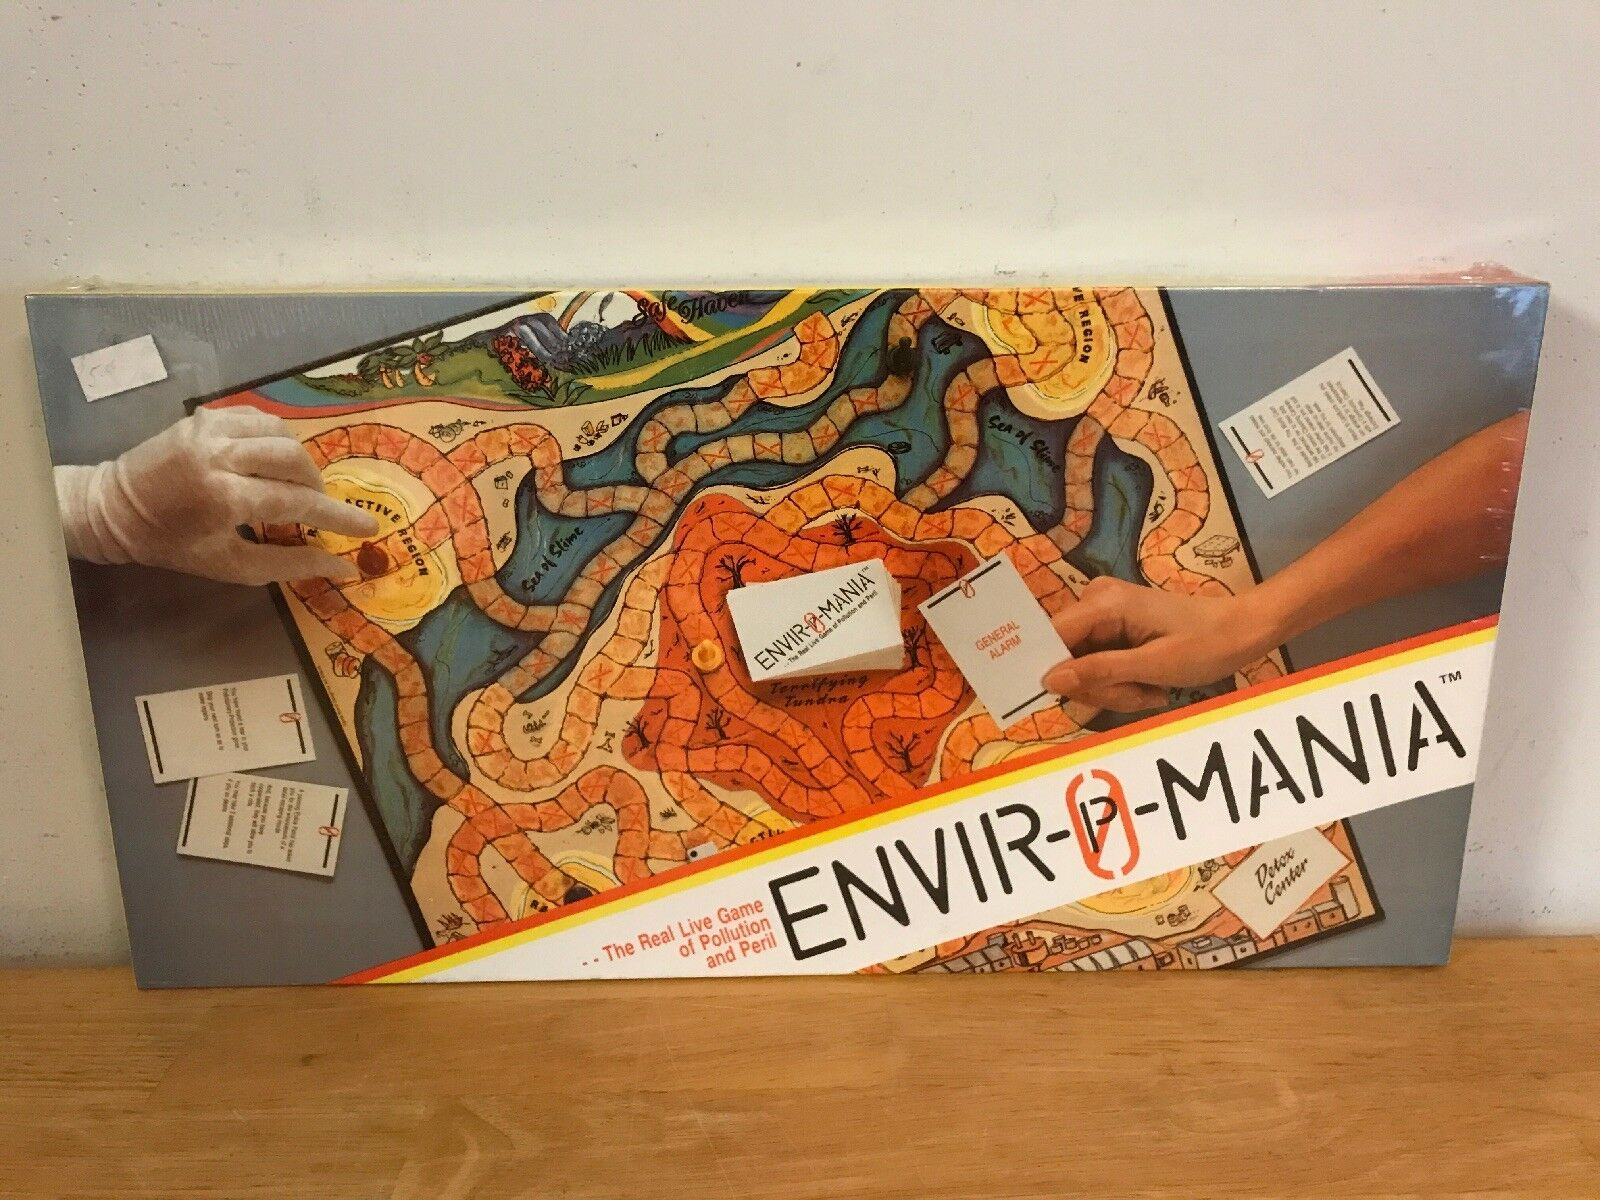 ENVIROMANIA ENVIR-O-MANIA POLLUTION & PERIL Board Game NEW FACTORY SEALED RARE